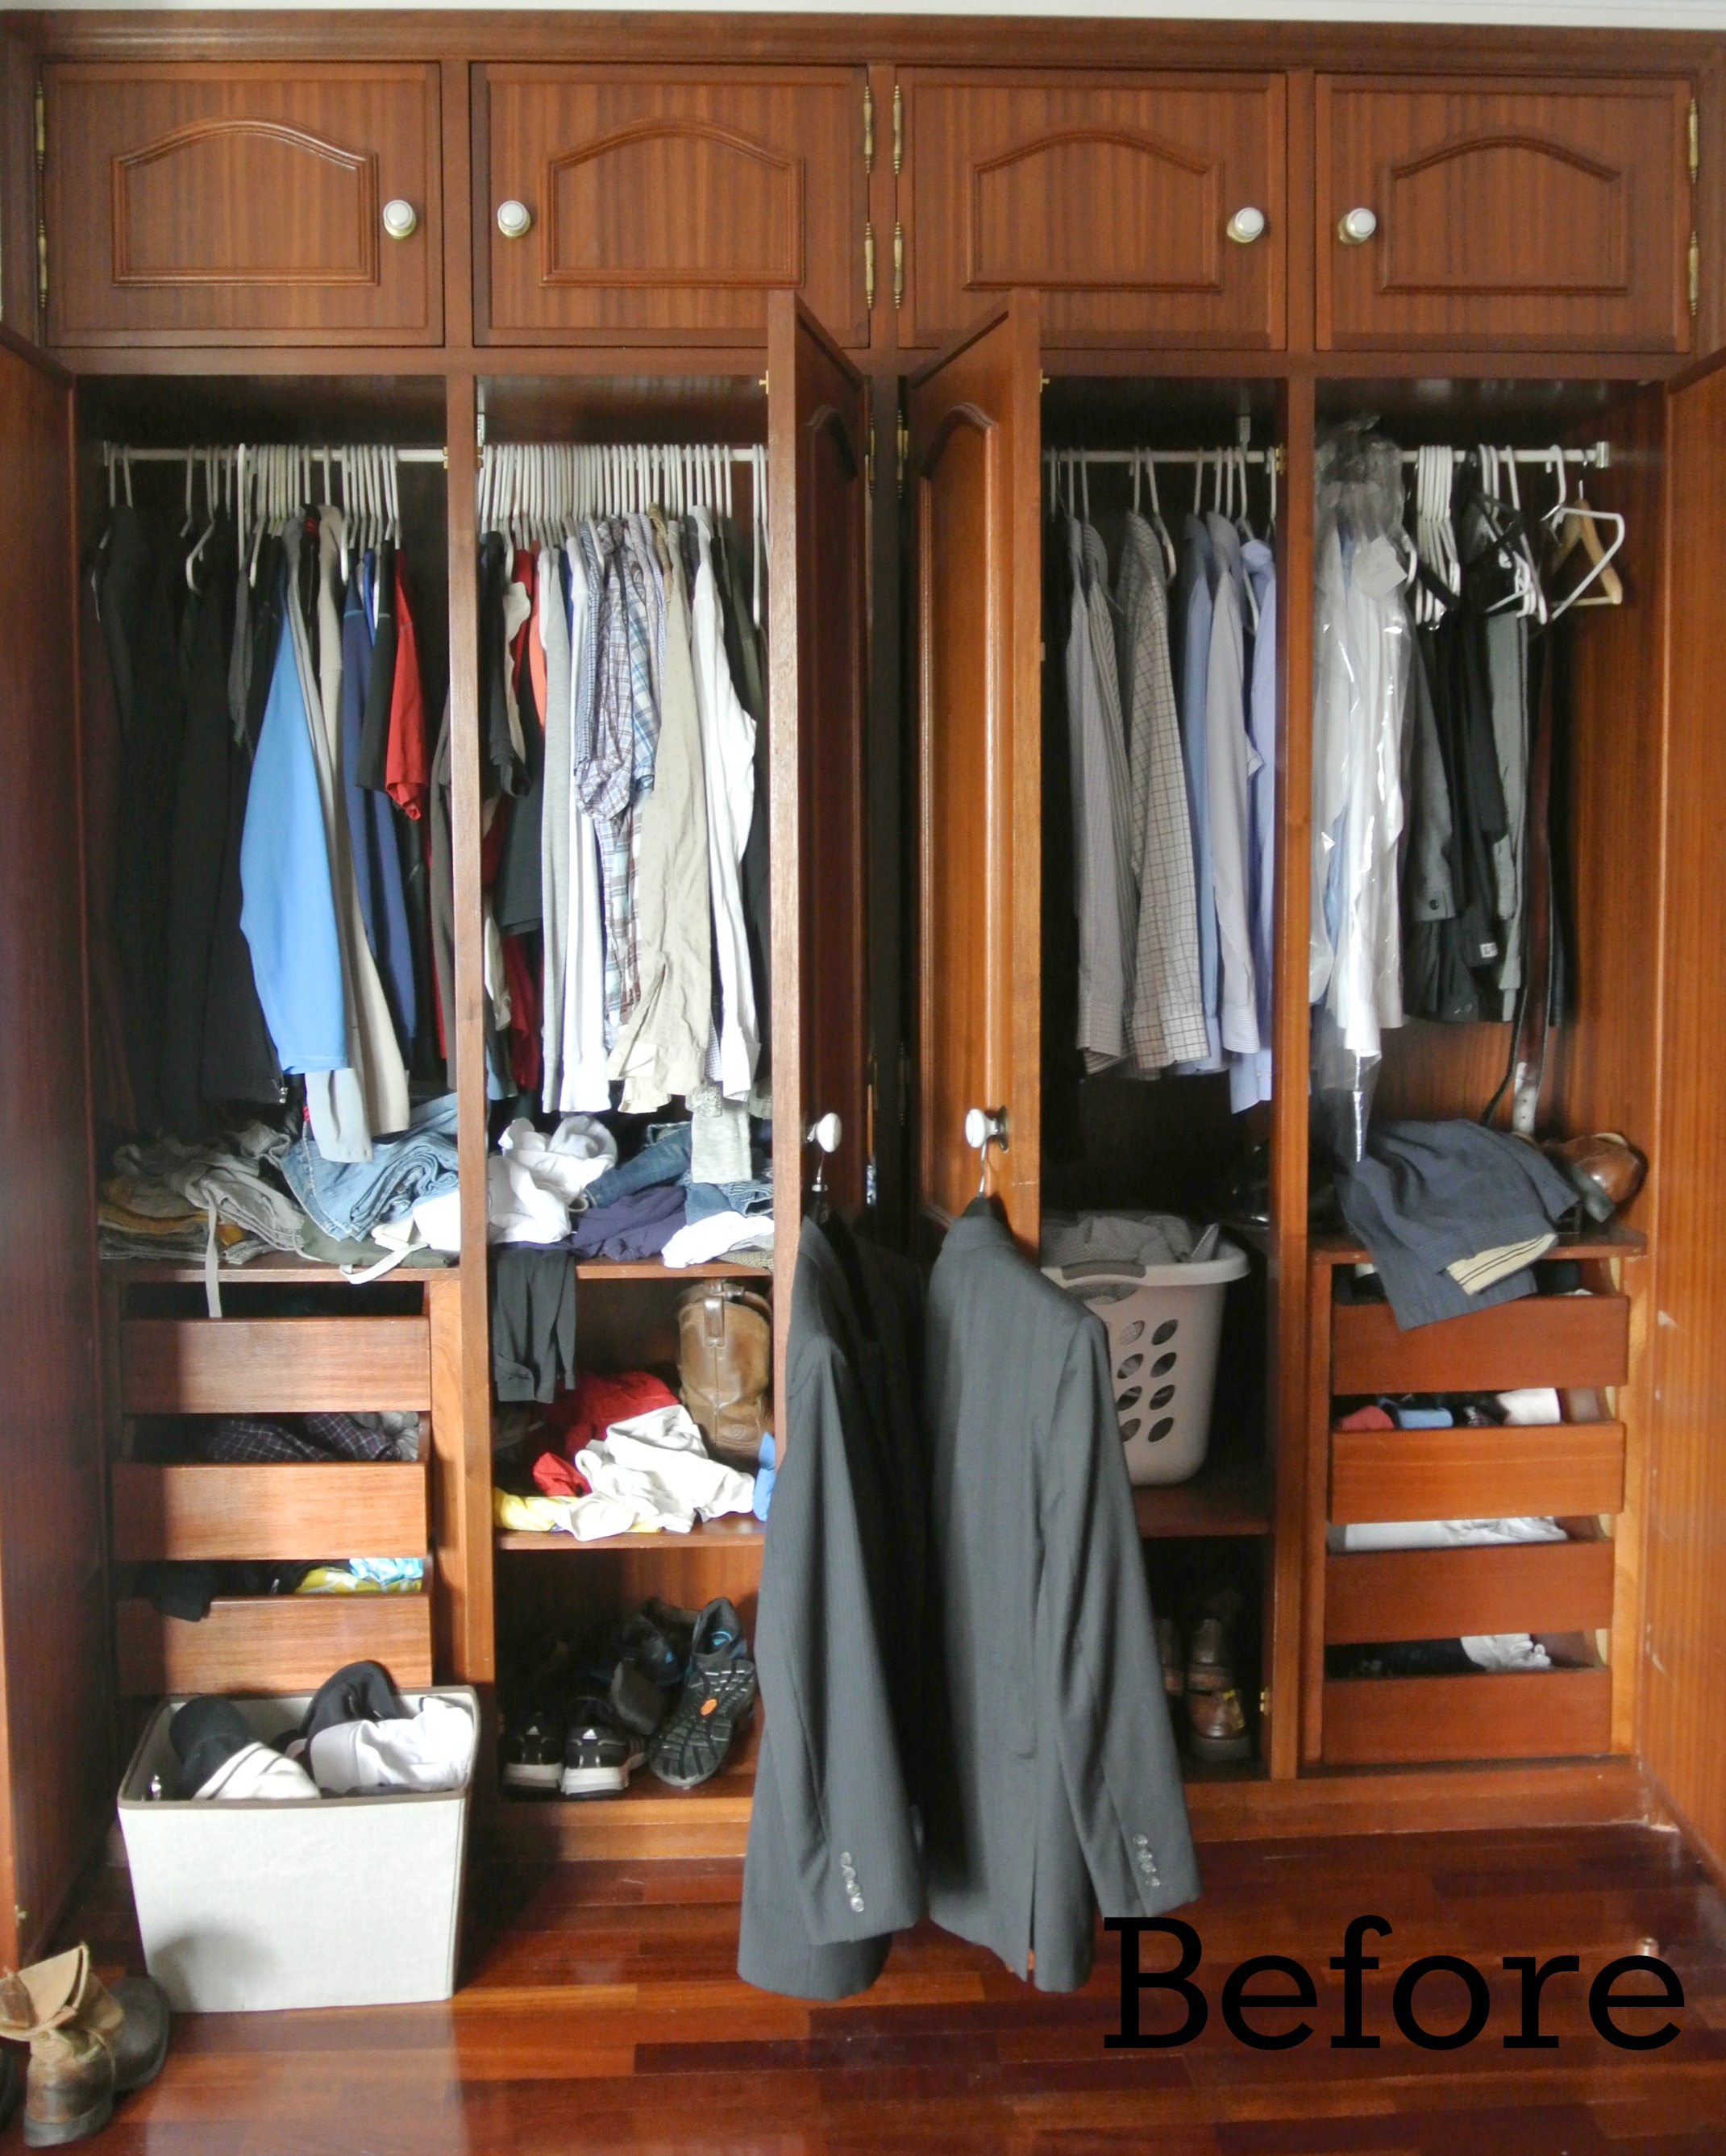 storage organization to home closet tips best cleaning organizing organize how ideas womansday com your